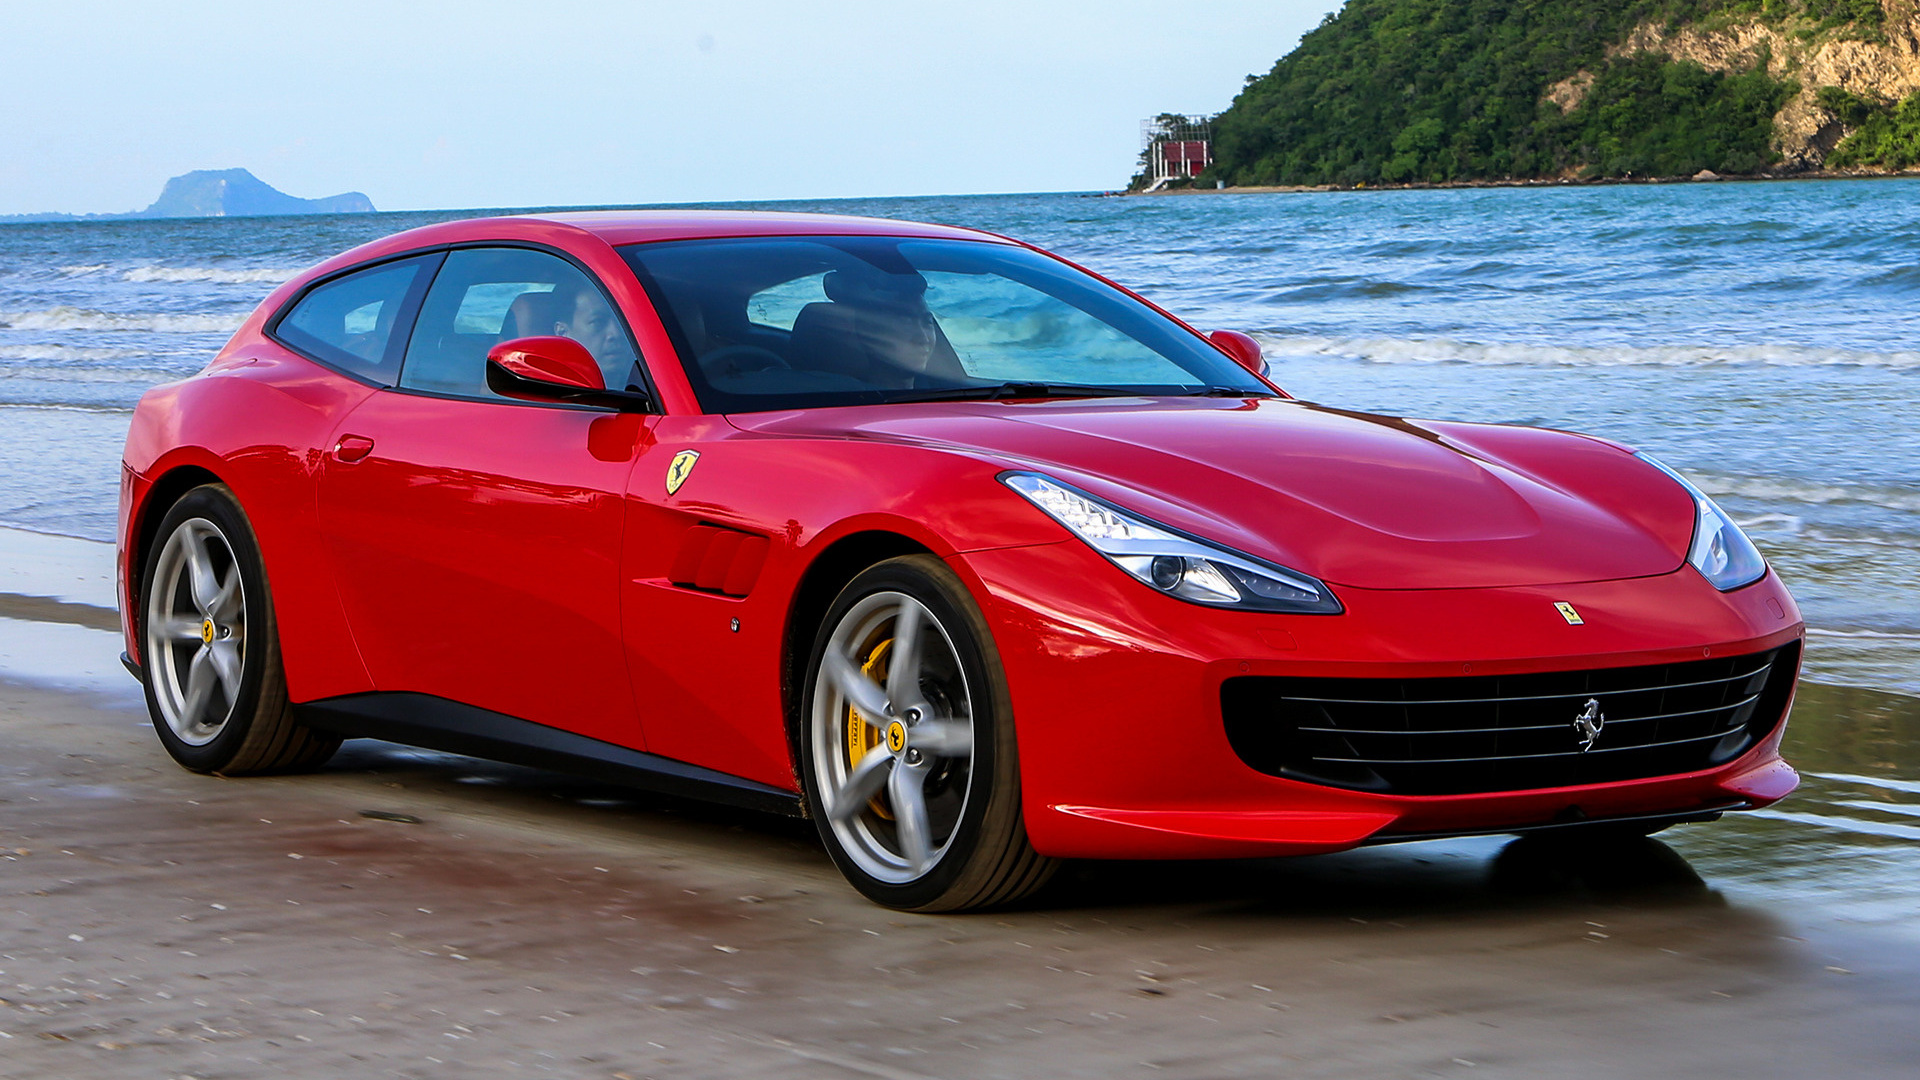 2017 Ferrari GTC4Lusso T (TH) - Wallpapers and HD Images ...